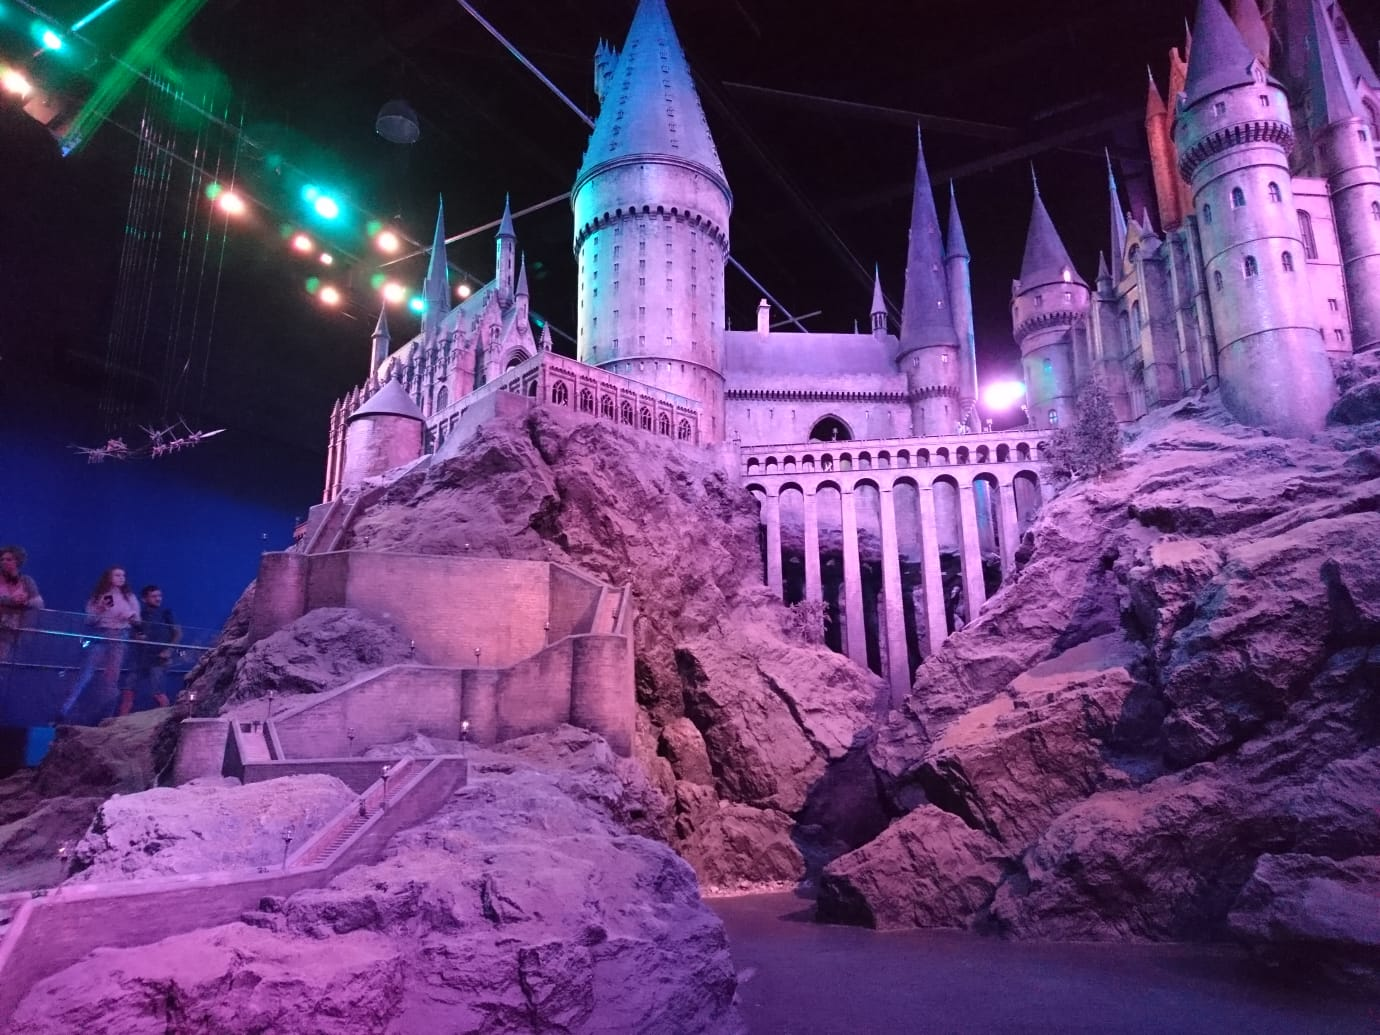 Harry Potter Studio Tour Hogwarts